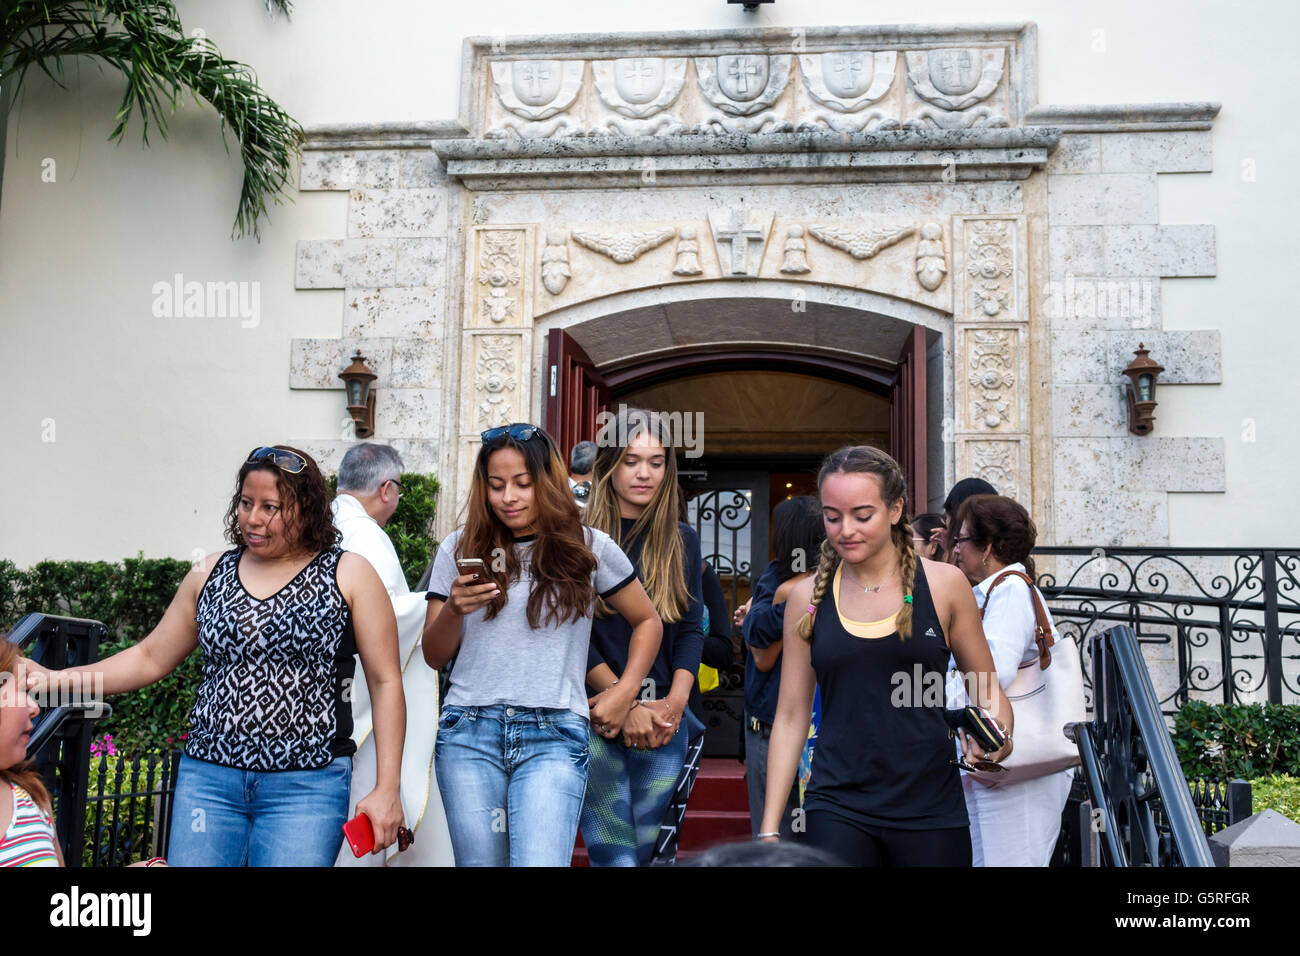 Miami Florida Beach St. Francis De Sales Catholic Church members after service leaving Hispanic teen girl - Stock Image